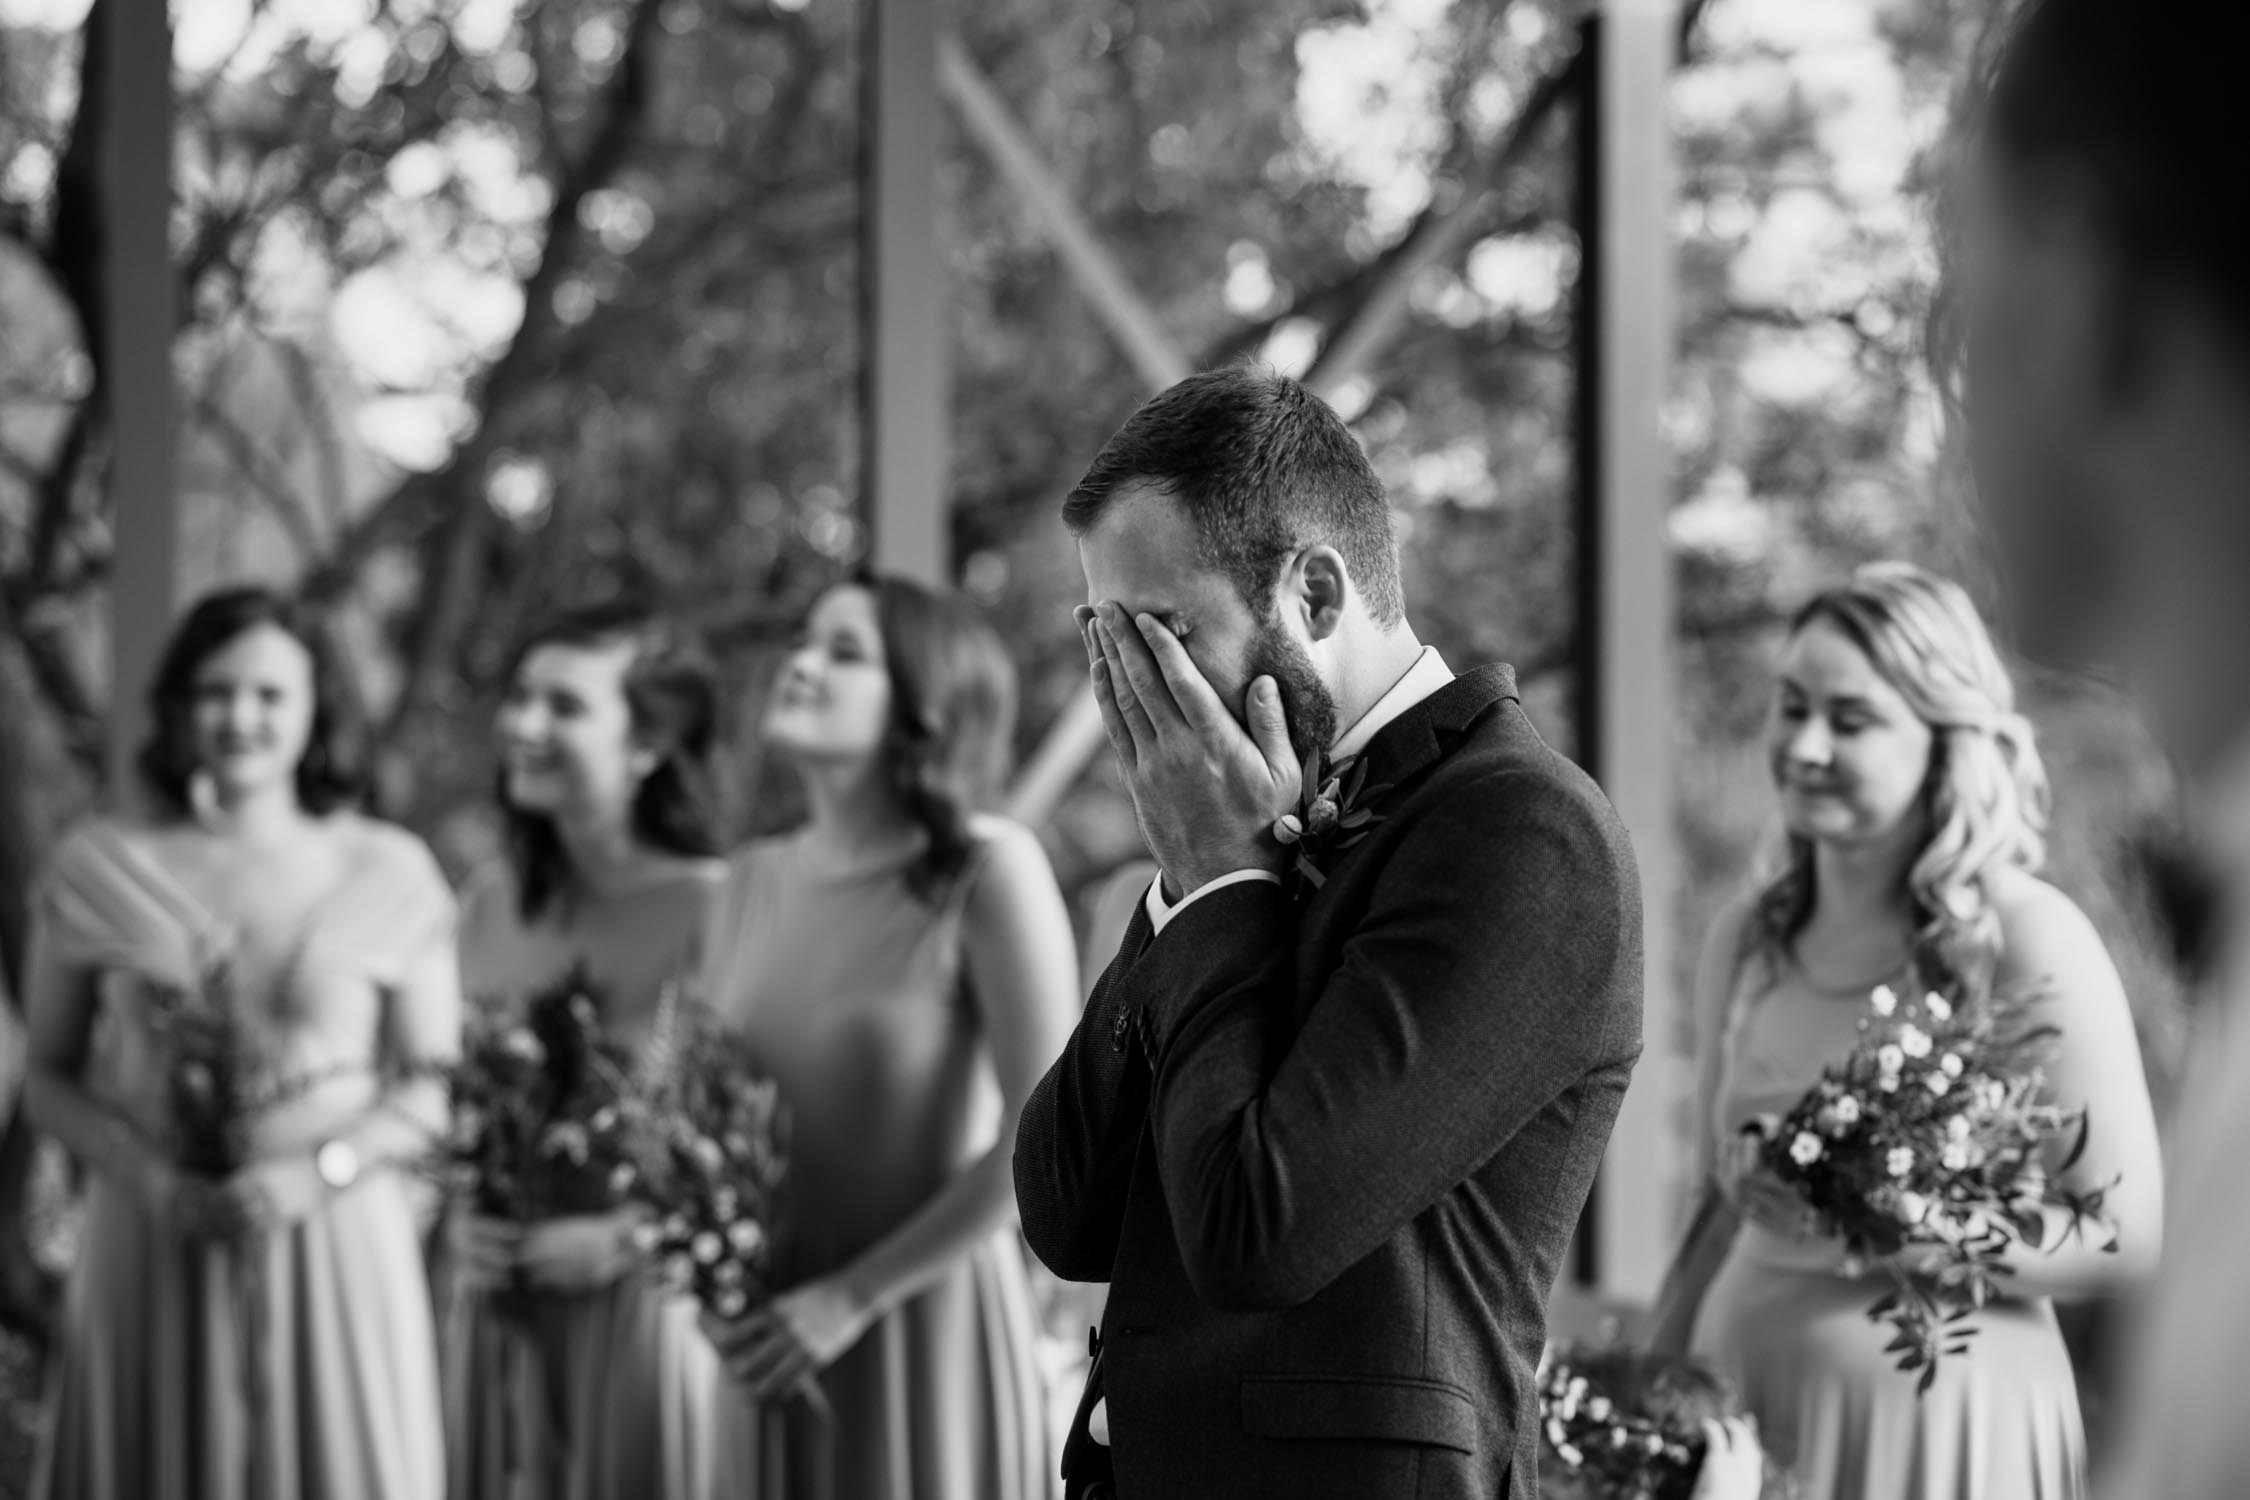 Photojournalistic photo of groom's emotional reaction as he watches his bride walk down the aisle